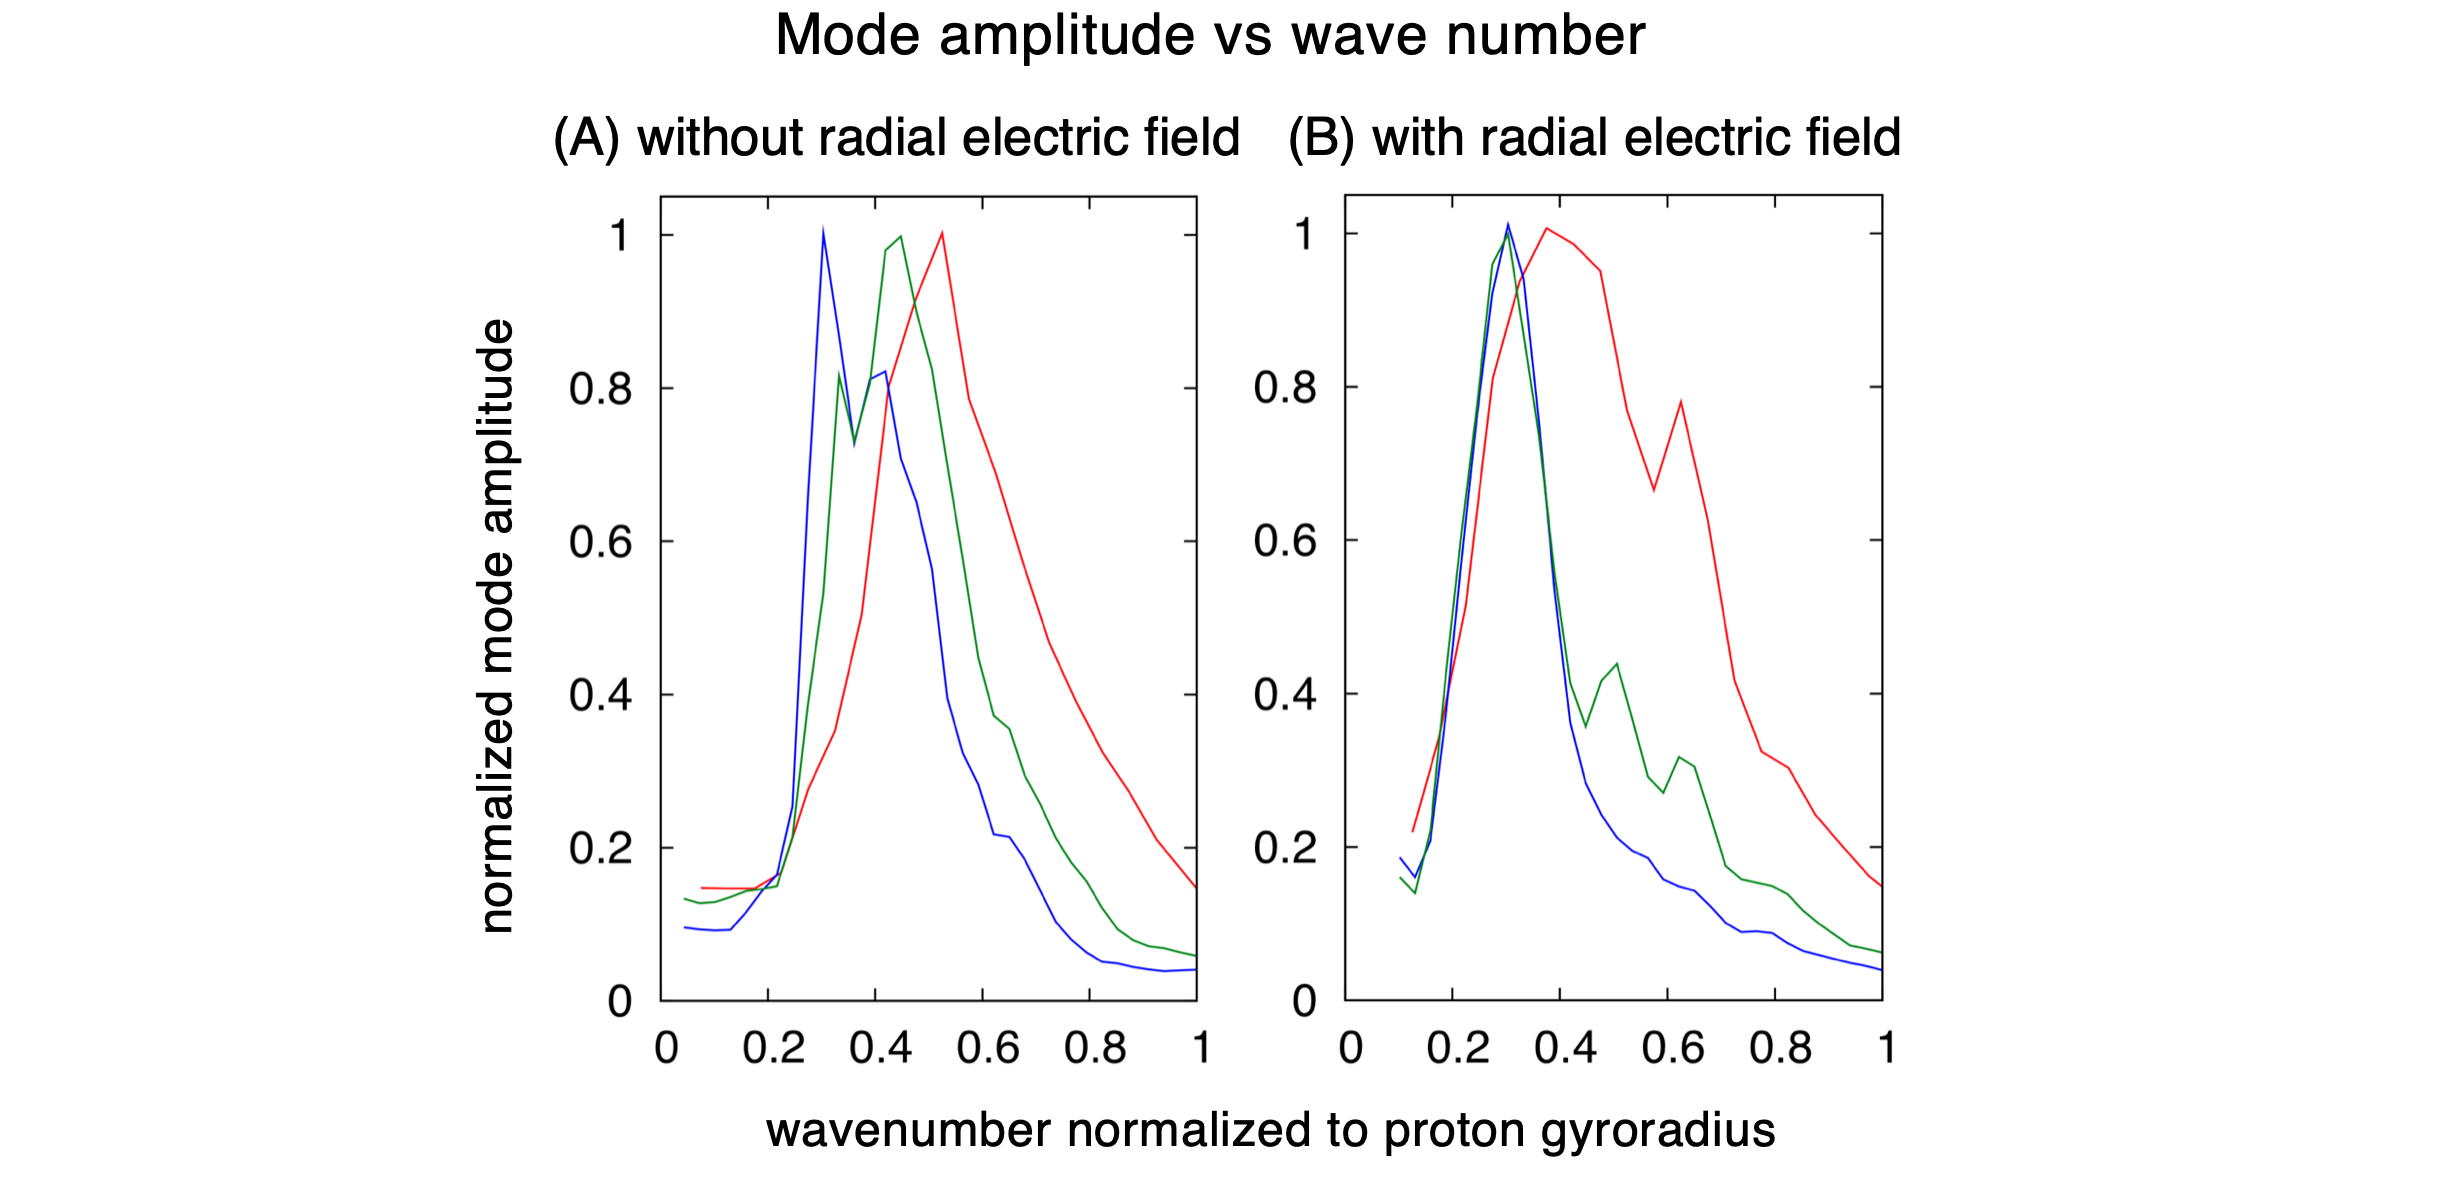 Normalized mode amplitude as a function of wavenumber obtained in (red) $A=1$, (blue) $A=3$, and (green) multi-component cases, without (A) and with (B) $E_{r}$.